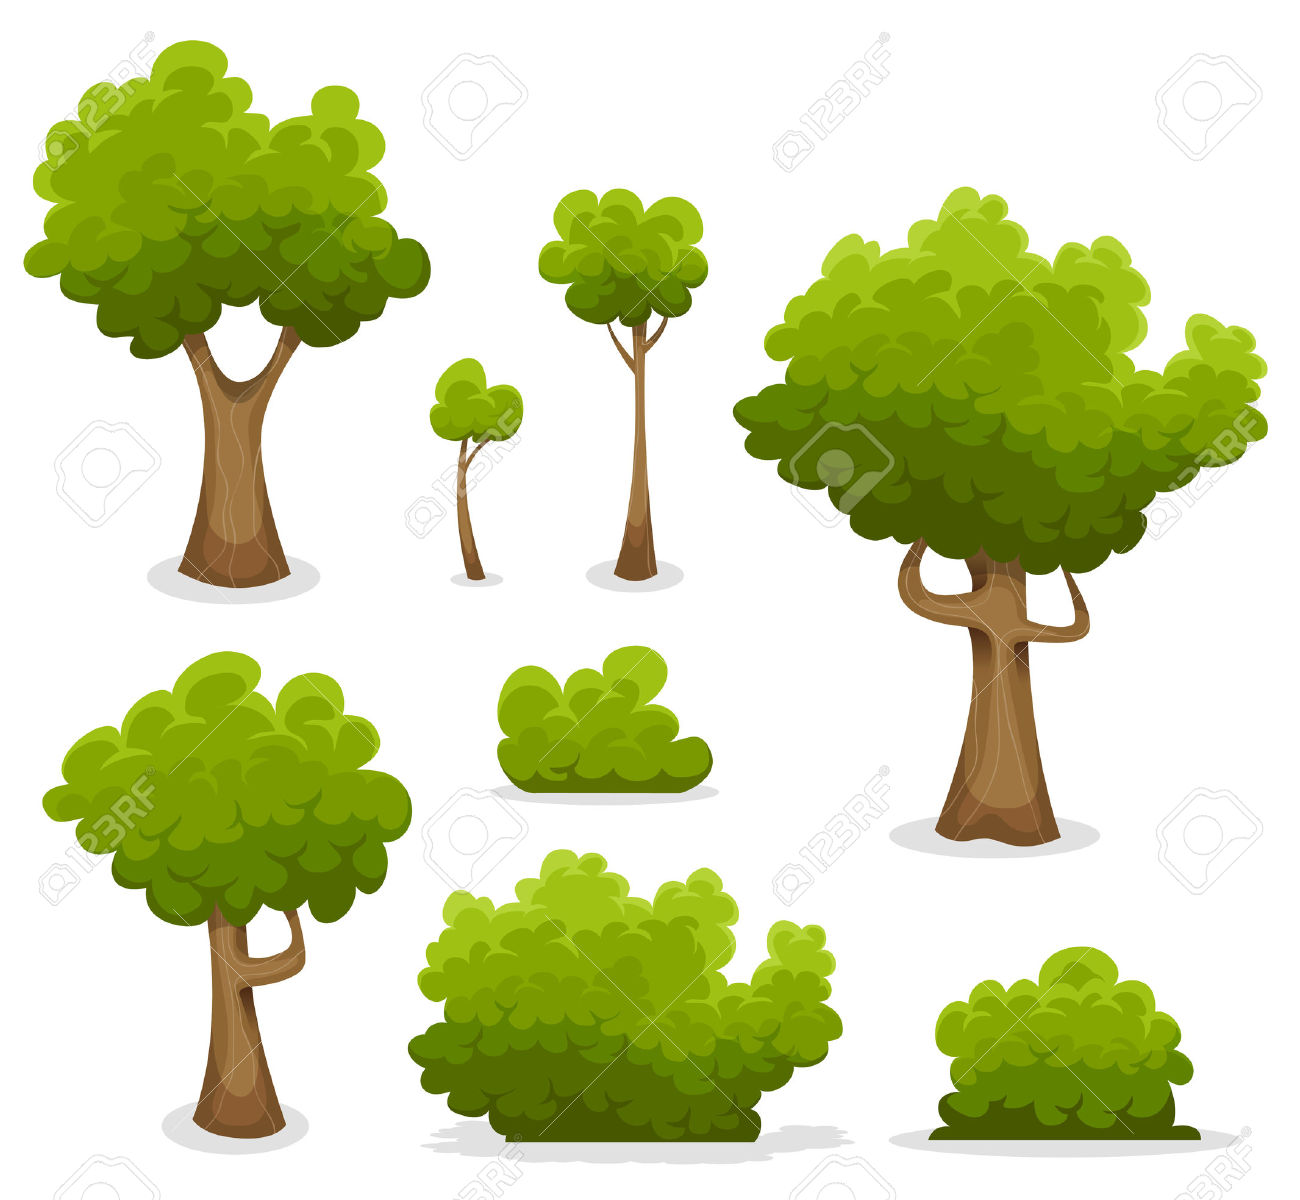 Hedges clipart #4, Download drawings